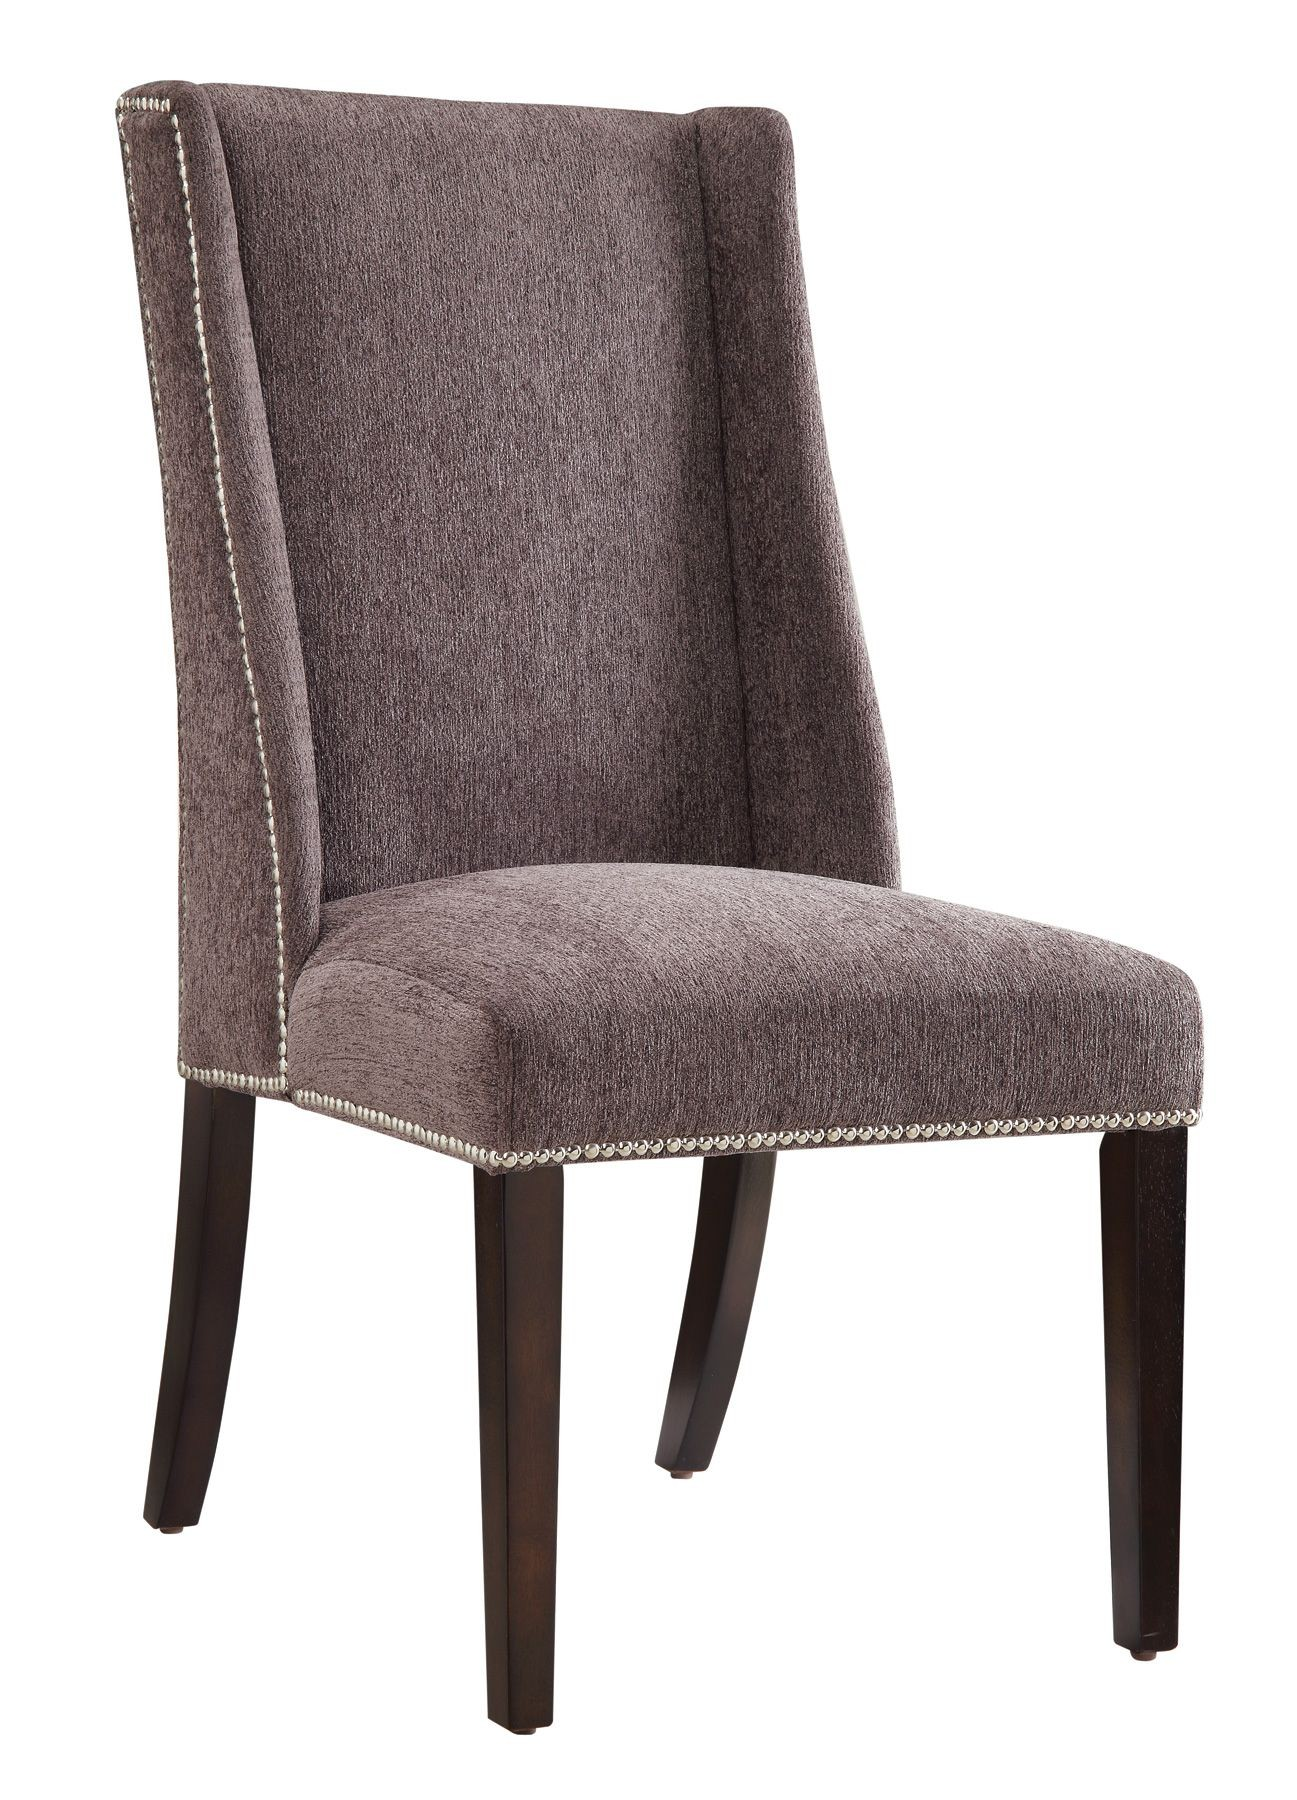 Accent Chairs Prices 902505 Grey Accent Chair Set Of 2 From Coaster Available